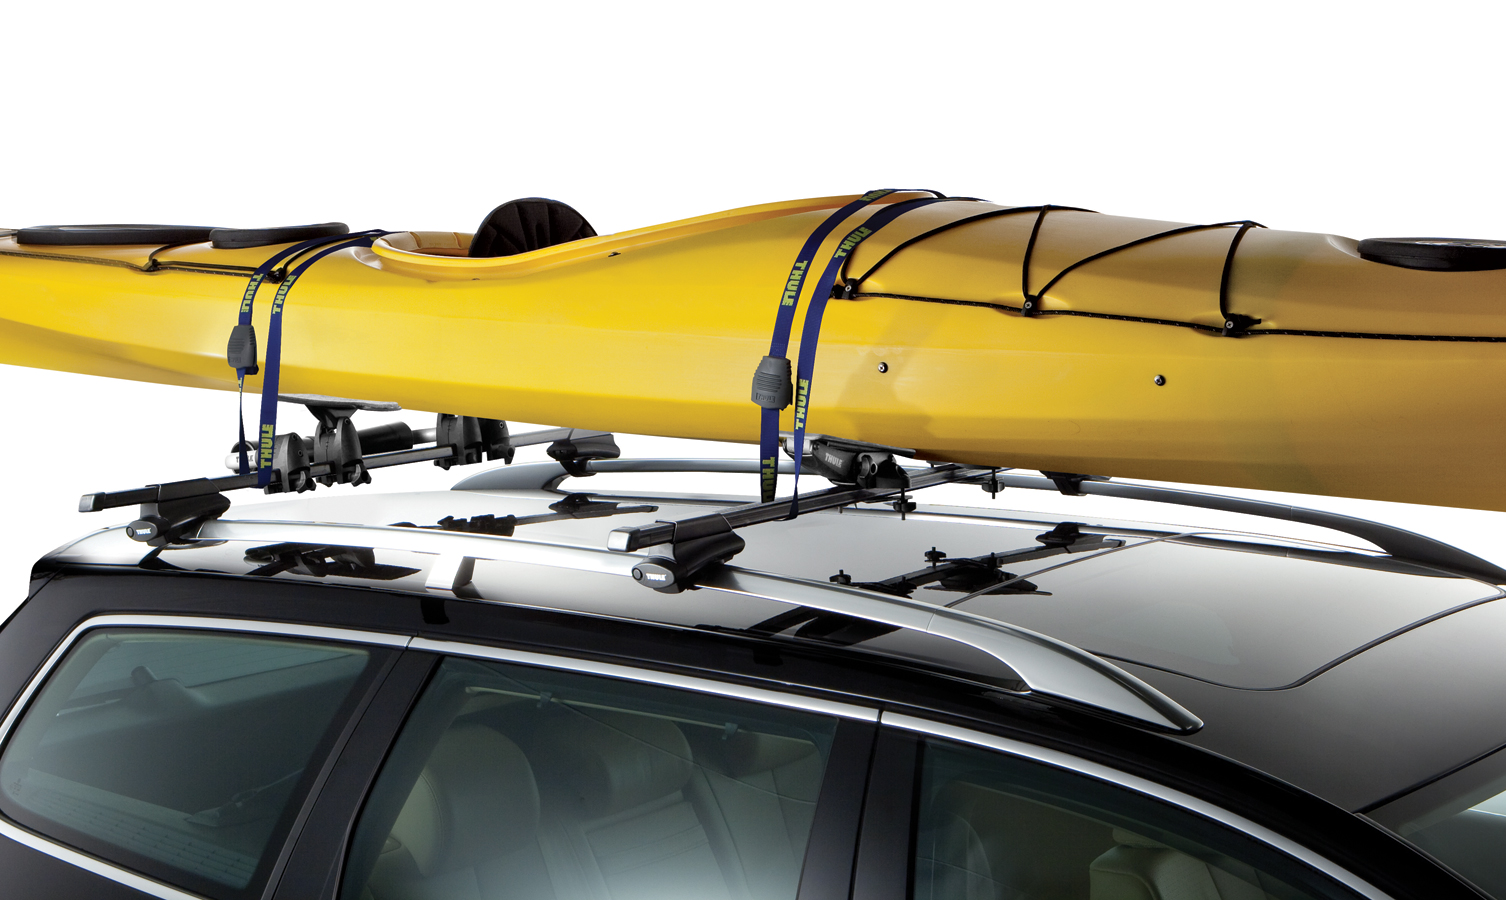 jeep thule post wrangler blog img racks yakima rack installation kayak